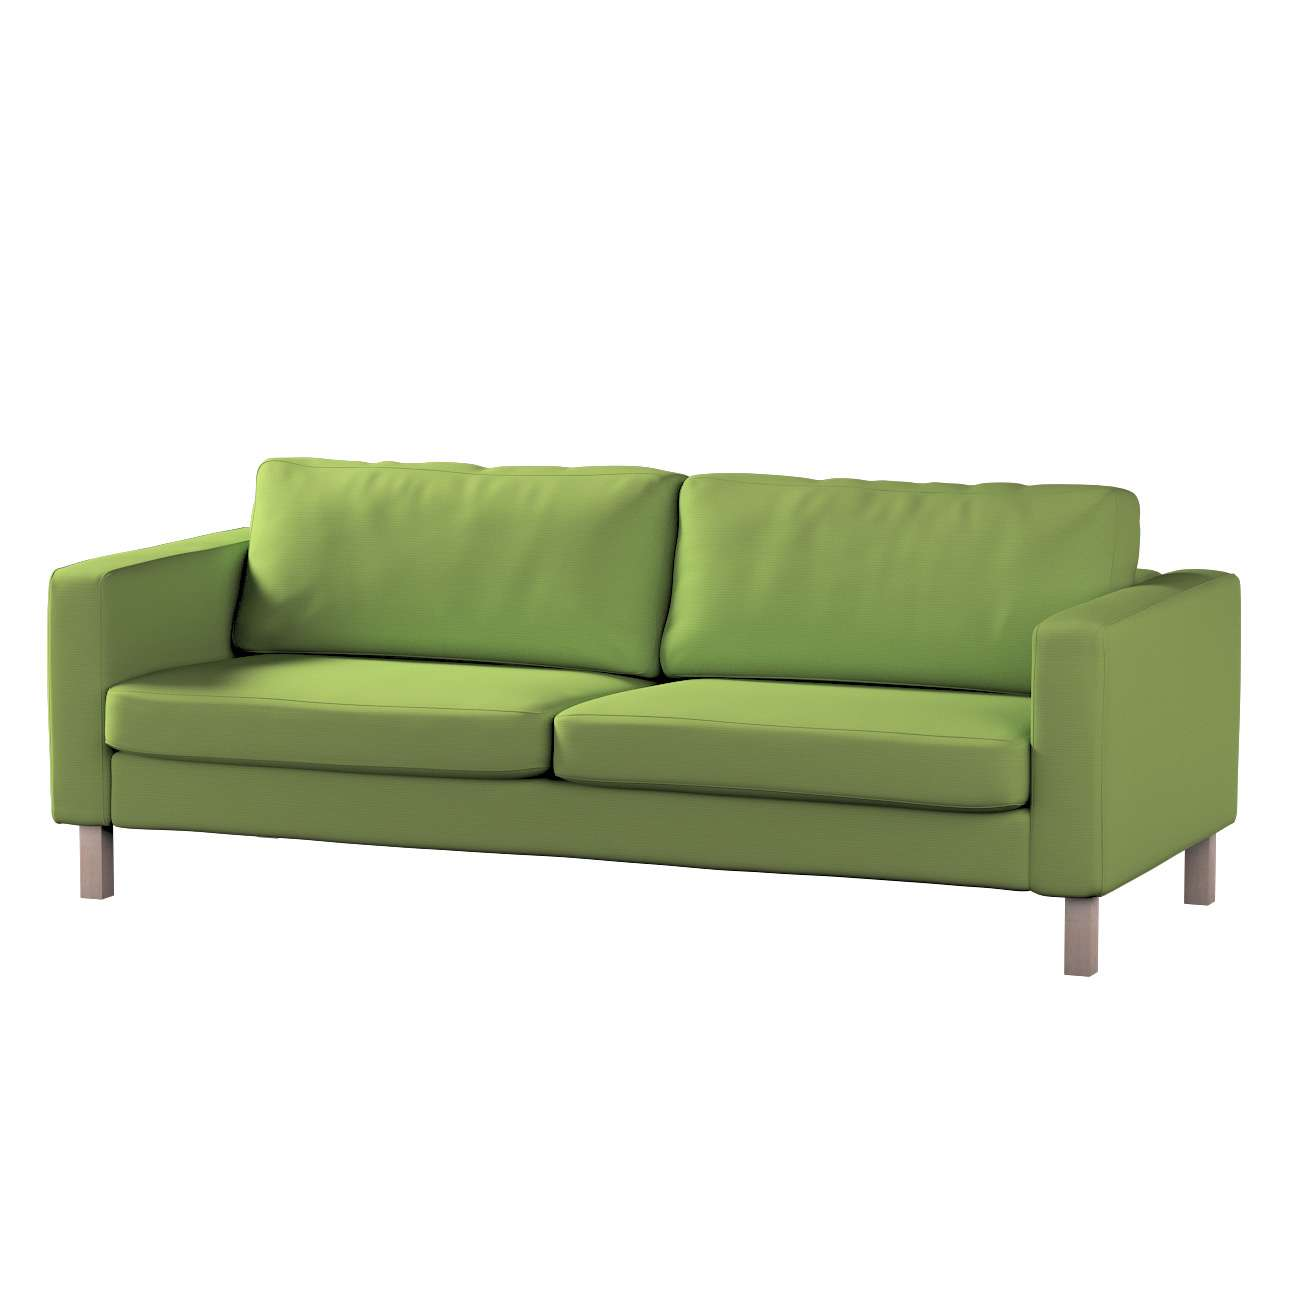 Cover For Karlstad Sofa: Karlstad 3-seater Sofa Cover, Fresh Stem Green, 702-27